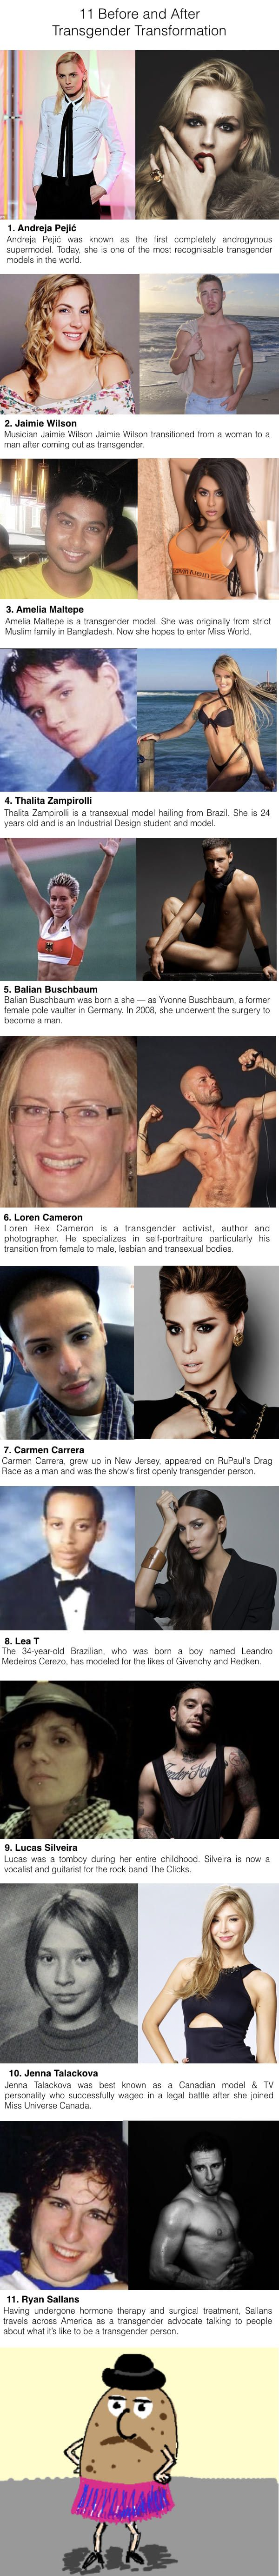 11 Before And After Transgender Transformations